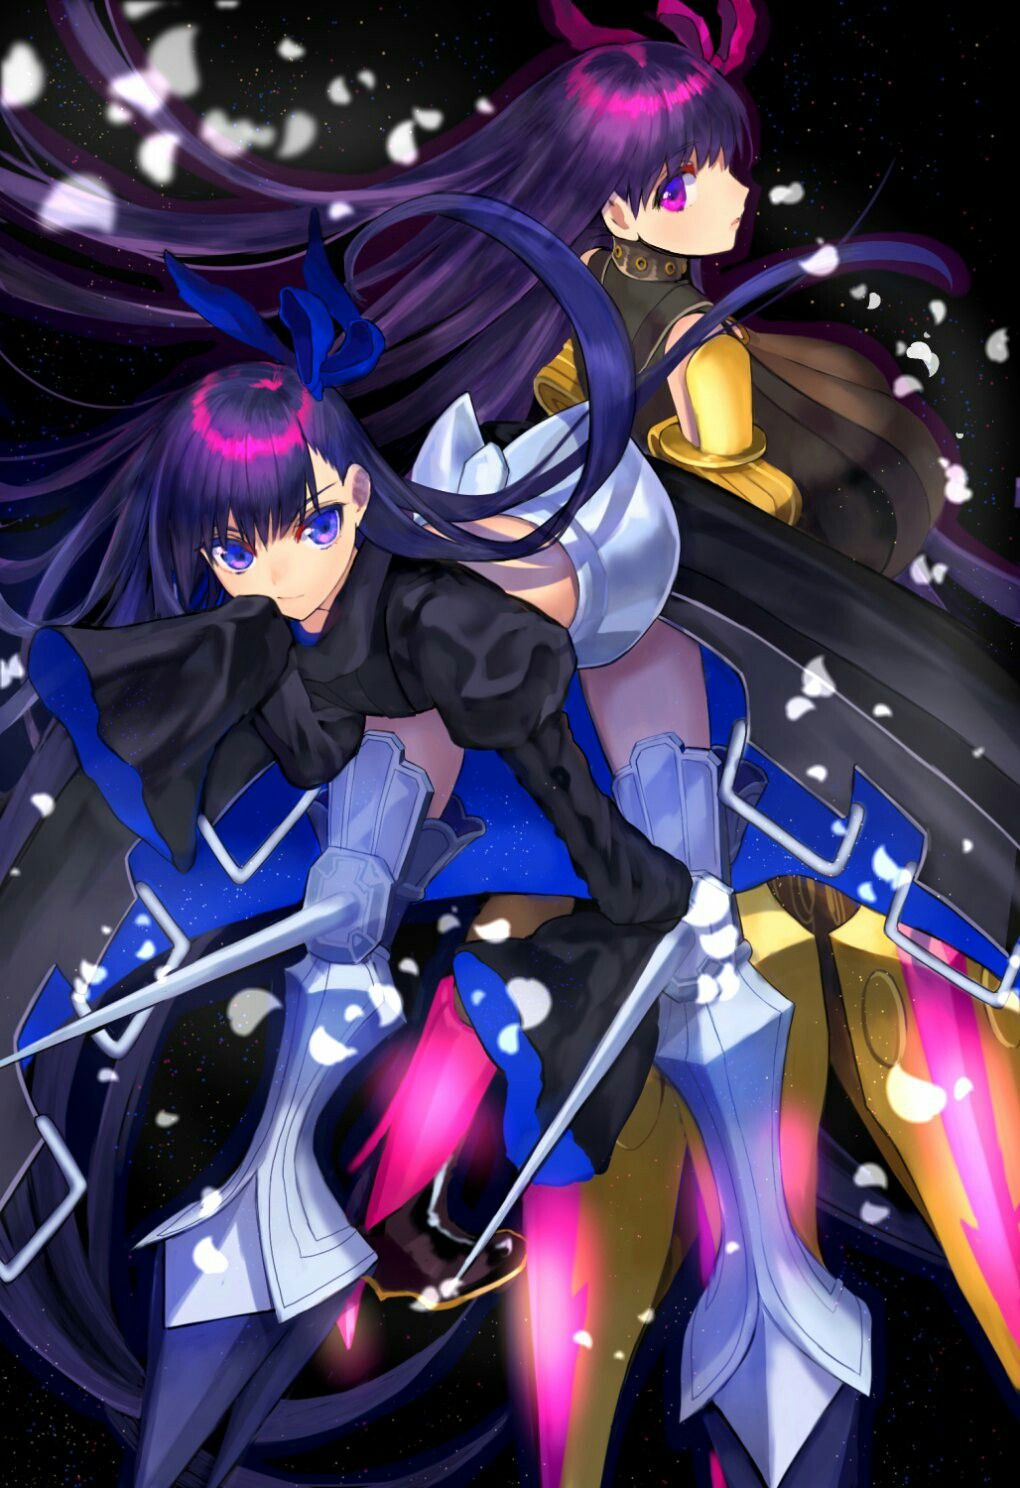 Fate Extra Ccc Fate Grand Order Meltllith And Passionlip Alter Ego By Ofustan On Twitter Fate Anime Series Fate Fate Stay Night Meltryllis and passionlip, as well as the rest of the sakura five, were created using the data of other heroic spirits/goddesses. pinterest